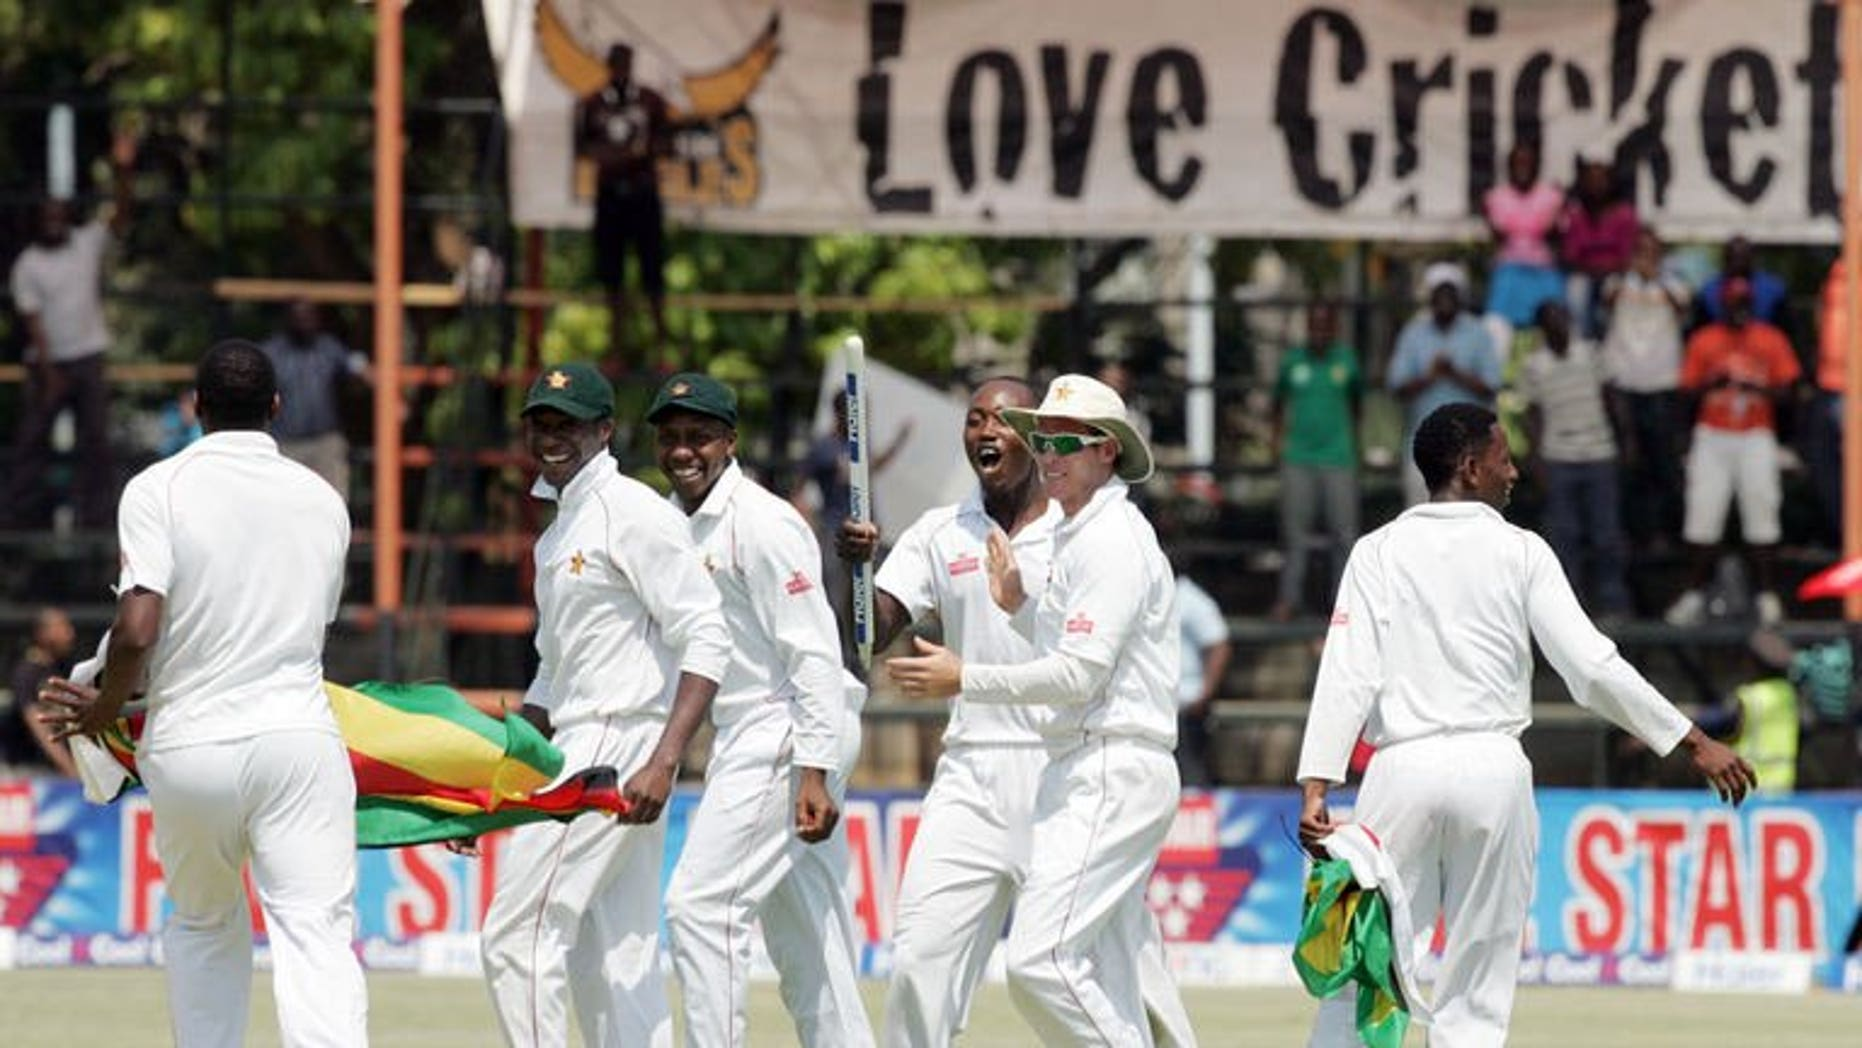 Zimbabwe players celebrate victory over Pakistan on September 14, 2013 during the fifth day of the second Test against at the Harare Sports Club. Former Pakistan cricket greats and fans have demanded a new national team captain and coach after an embarrassing defeat against minnows Zimbabwe.